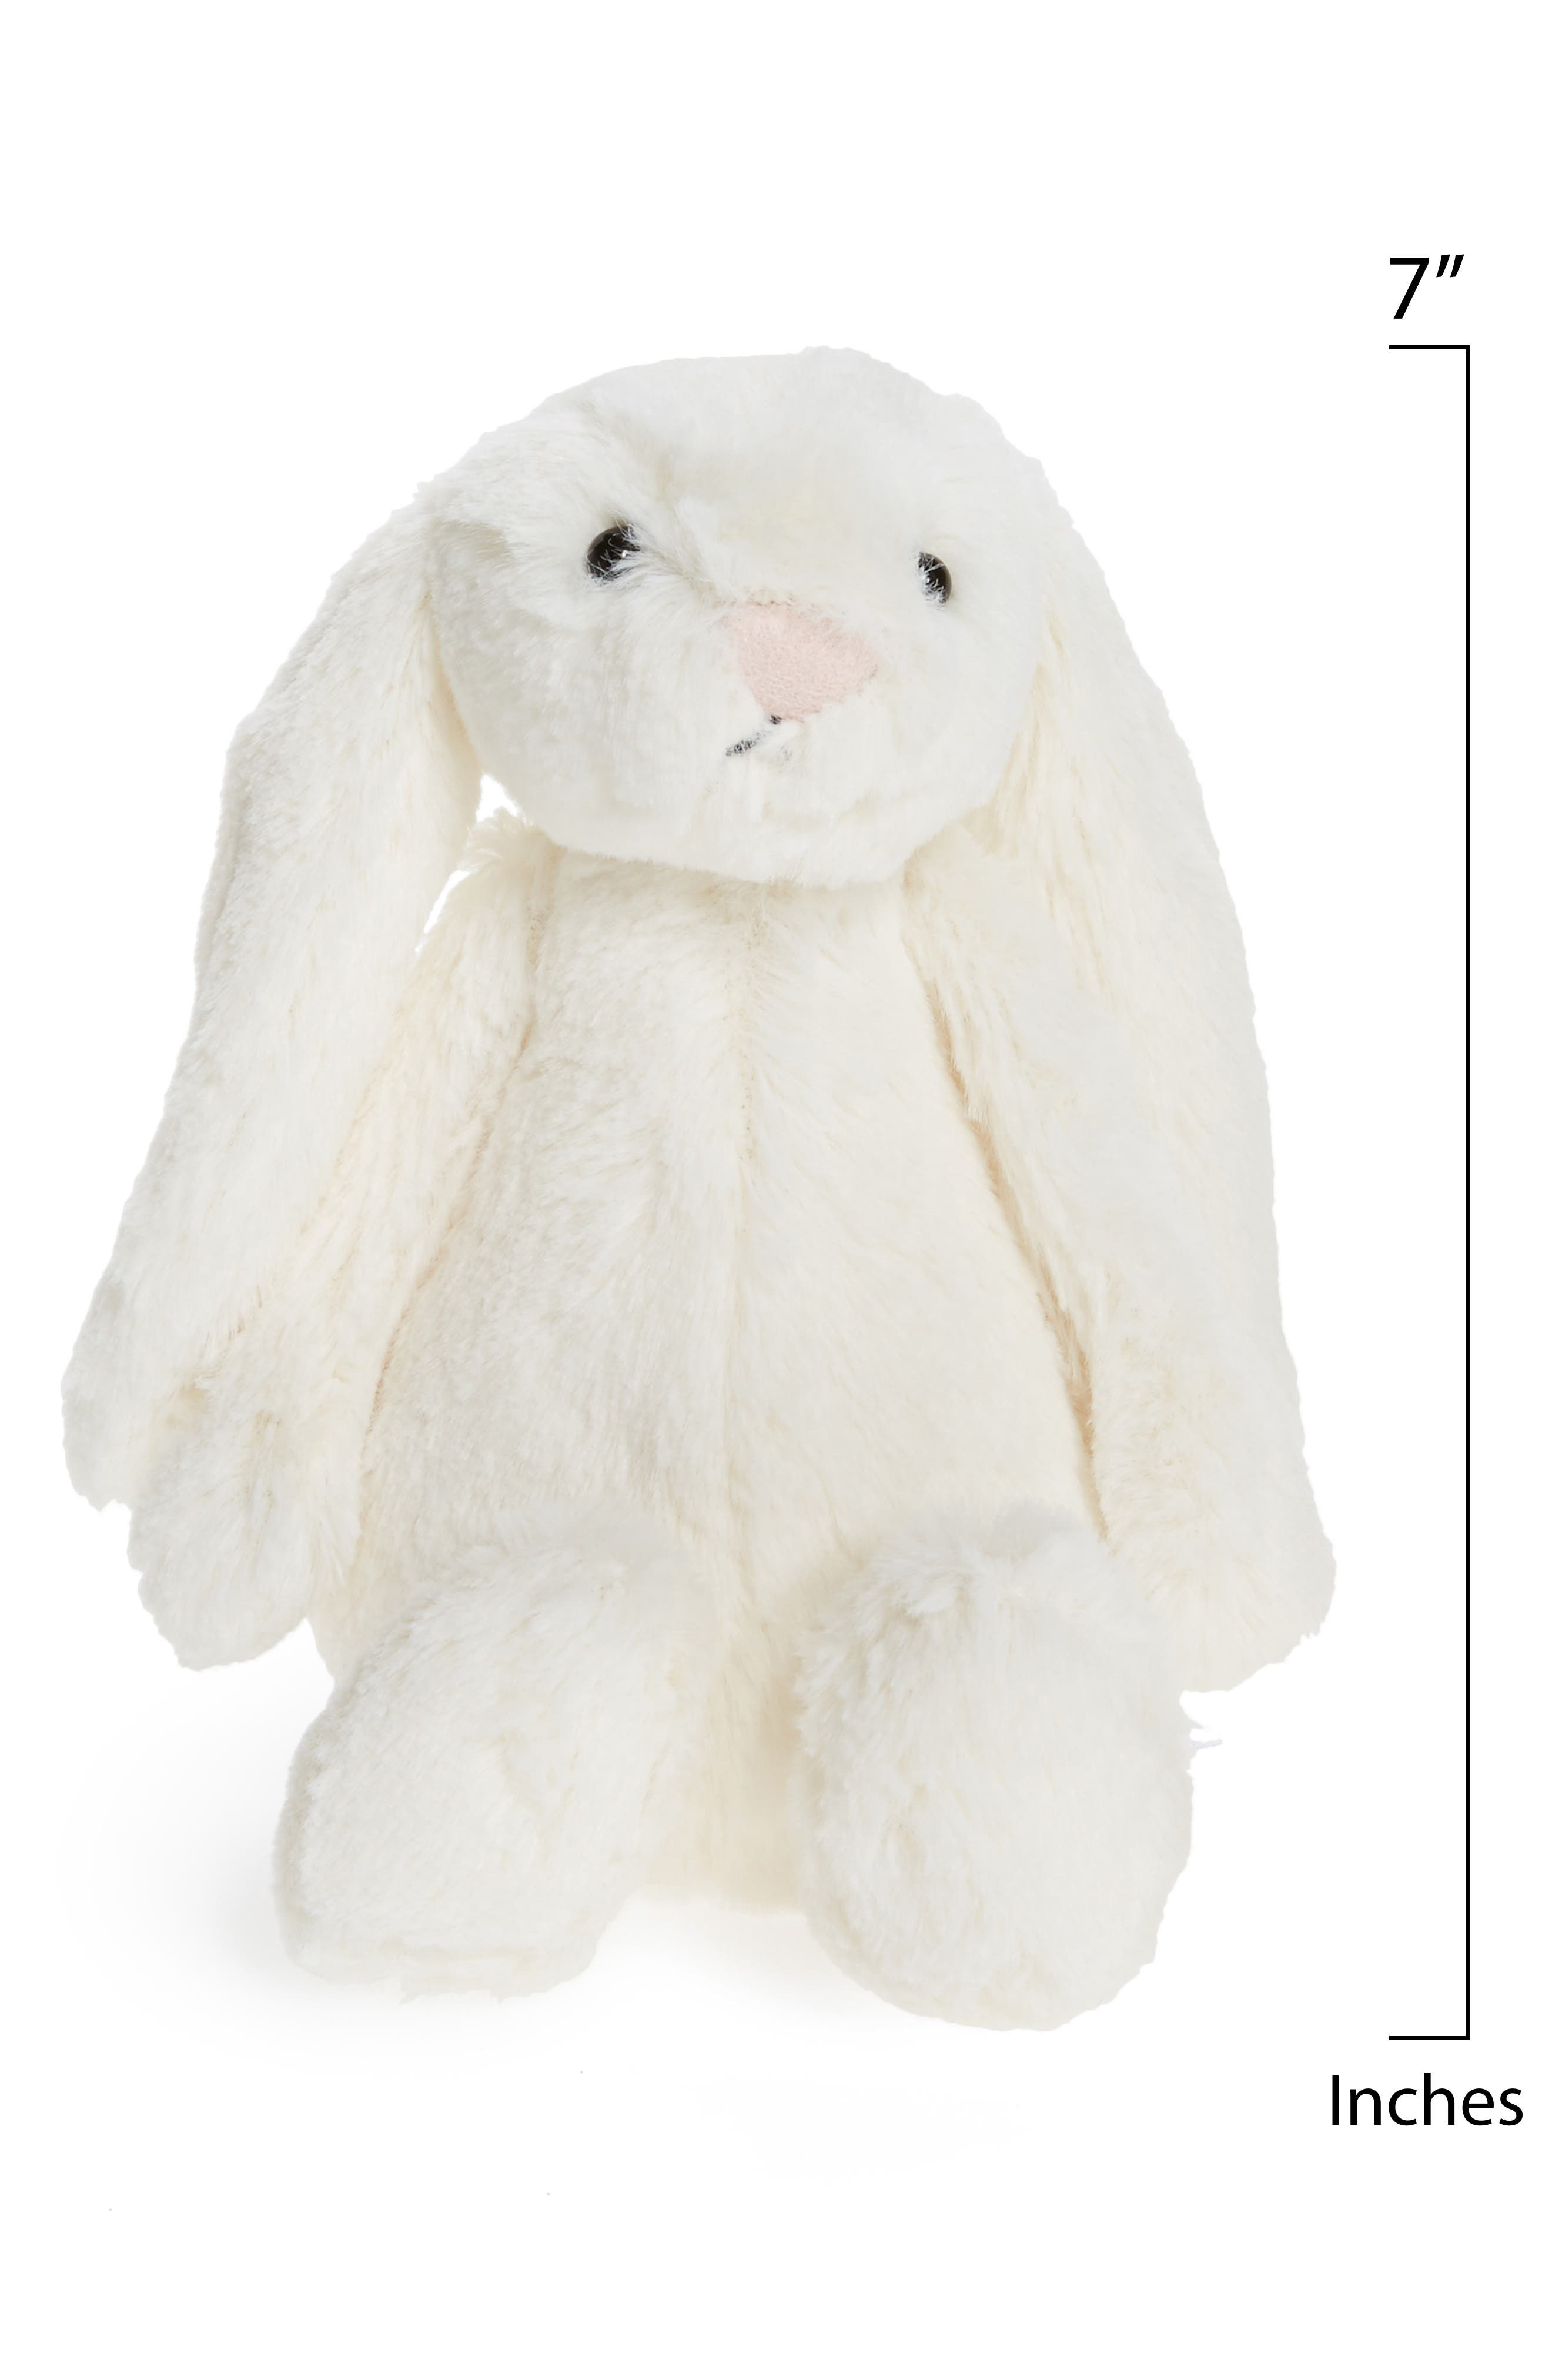 'Small Bashful Bunny' Stuffed Animal,                             Alternate thumbnail 2, color,                             Cream